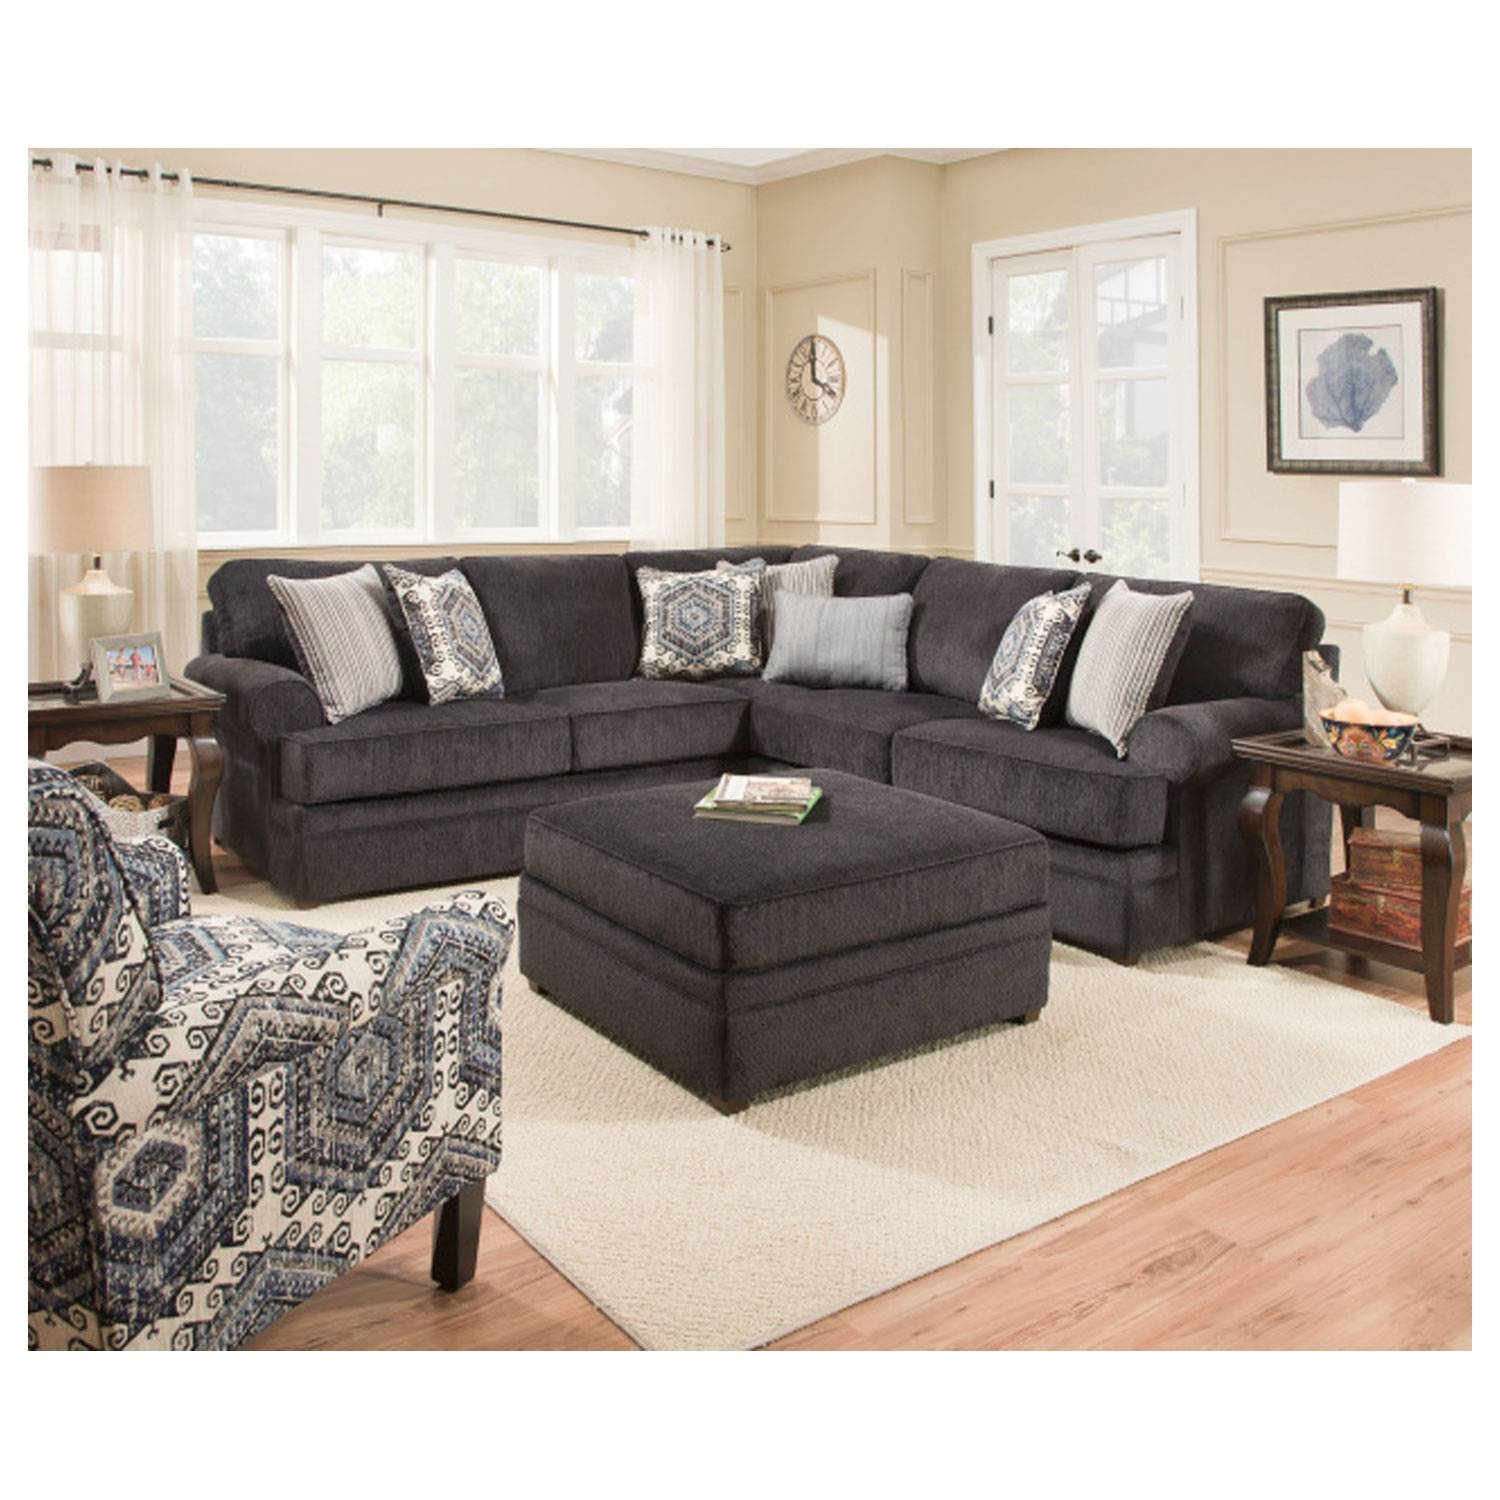 Simmons 8530Br Sectional Sofa Bellamy Slate | Hope Home within Simmons Sectional Sofas (Image 12 of 30)